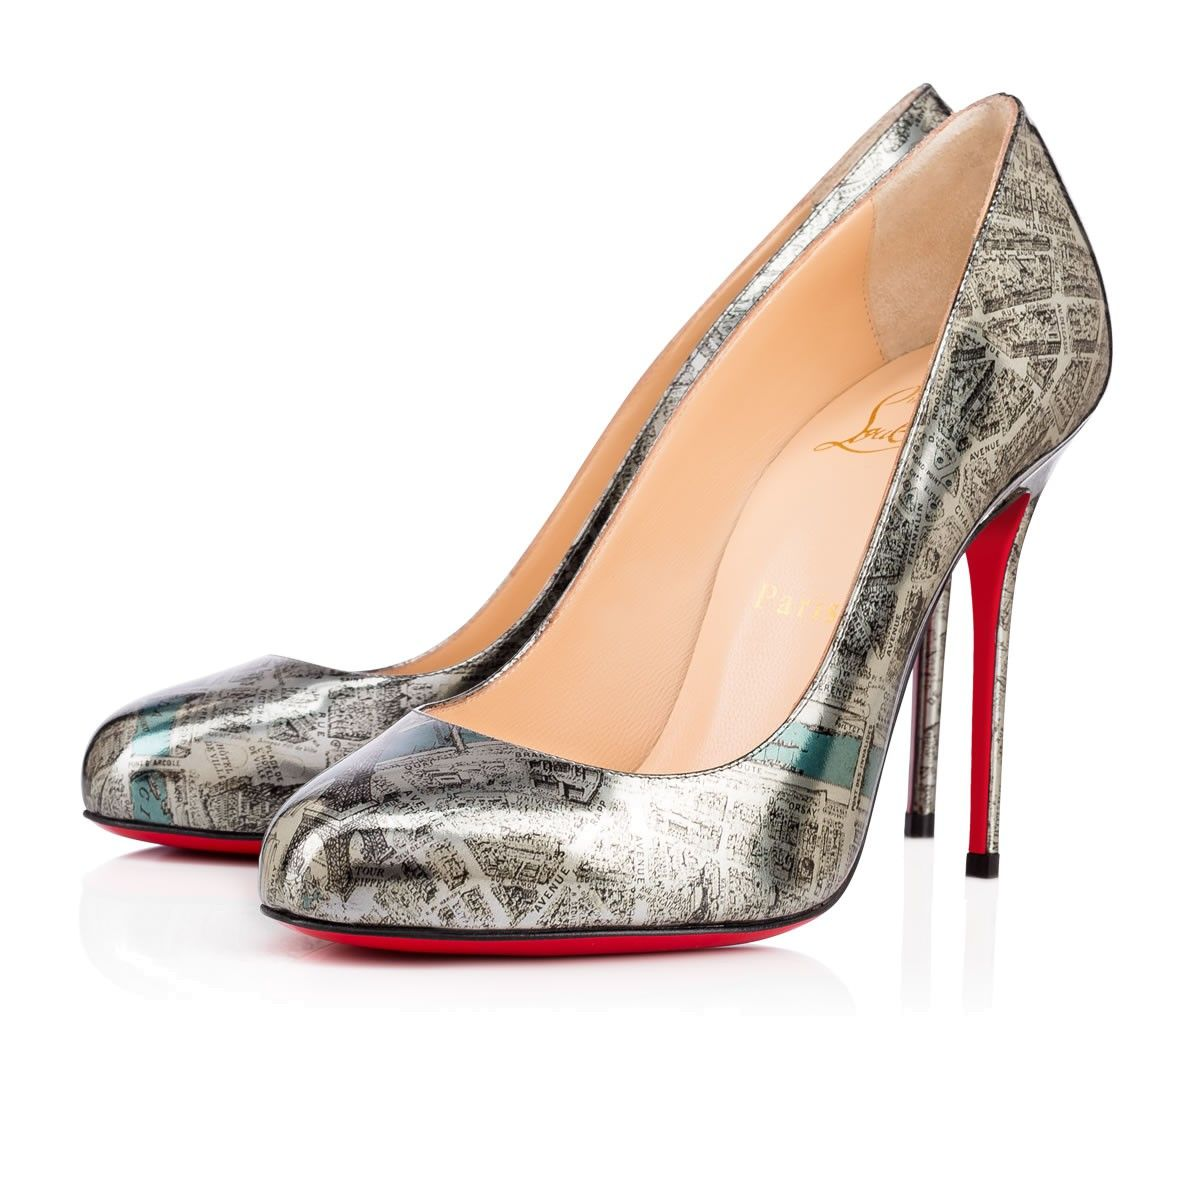 8f27e5bc4ea97 CHRISTIAN LOUBOUTIN Fifi Specchio Plan De Paris 100 Multicolor  Specchio Laminato - Women Shoes - Christian Louboutin.  christianlouboutin   shoes